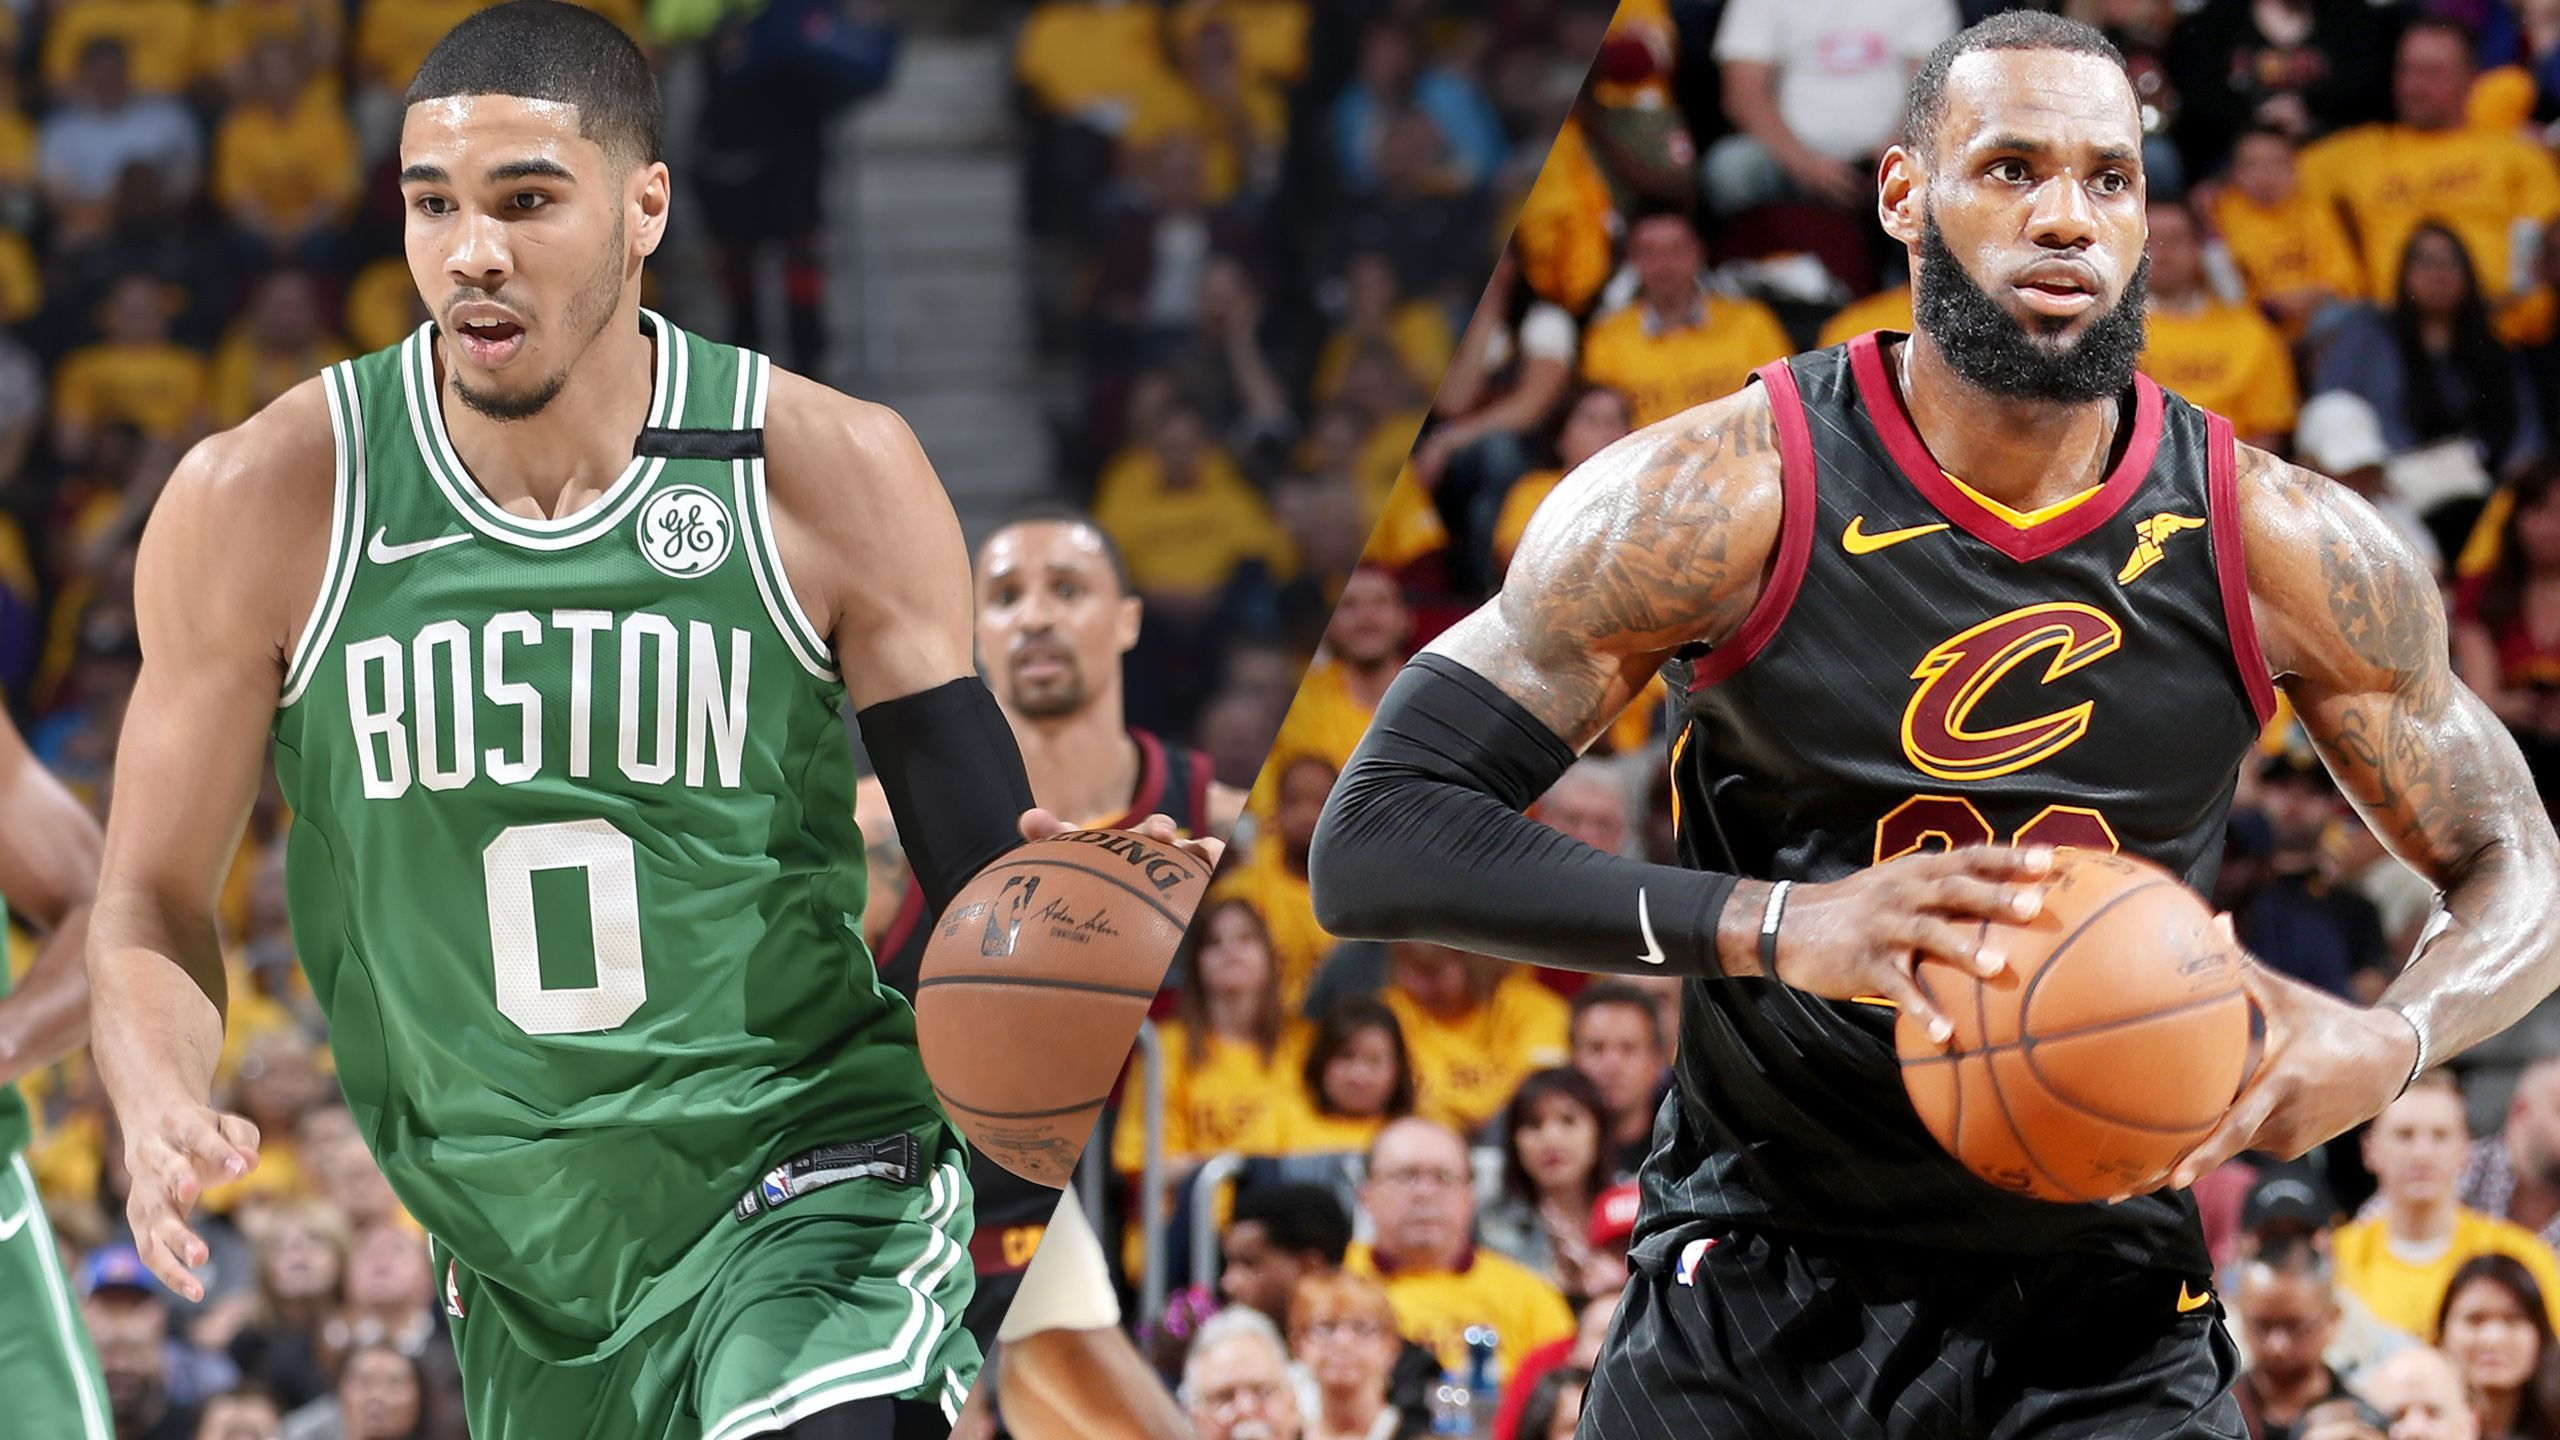 Boston Celtics vs. Cleveland Cavaliers (Conference Finals Game 6) (re-air)